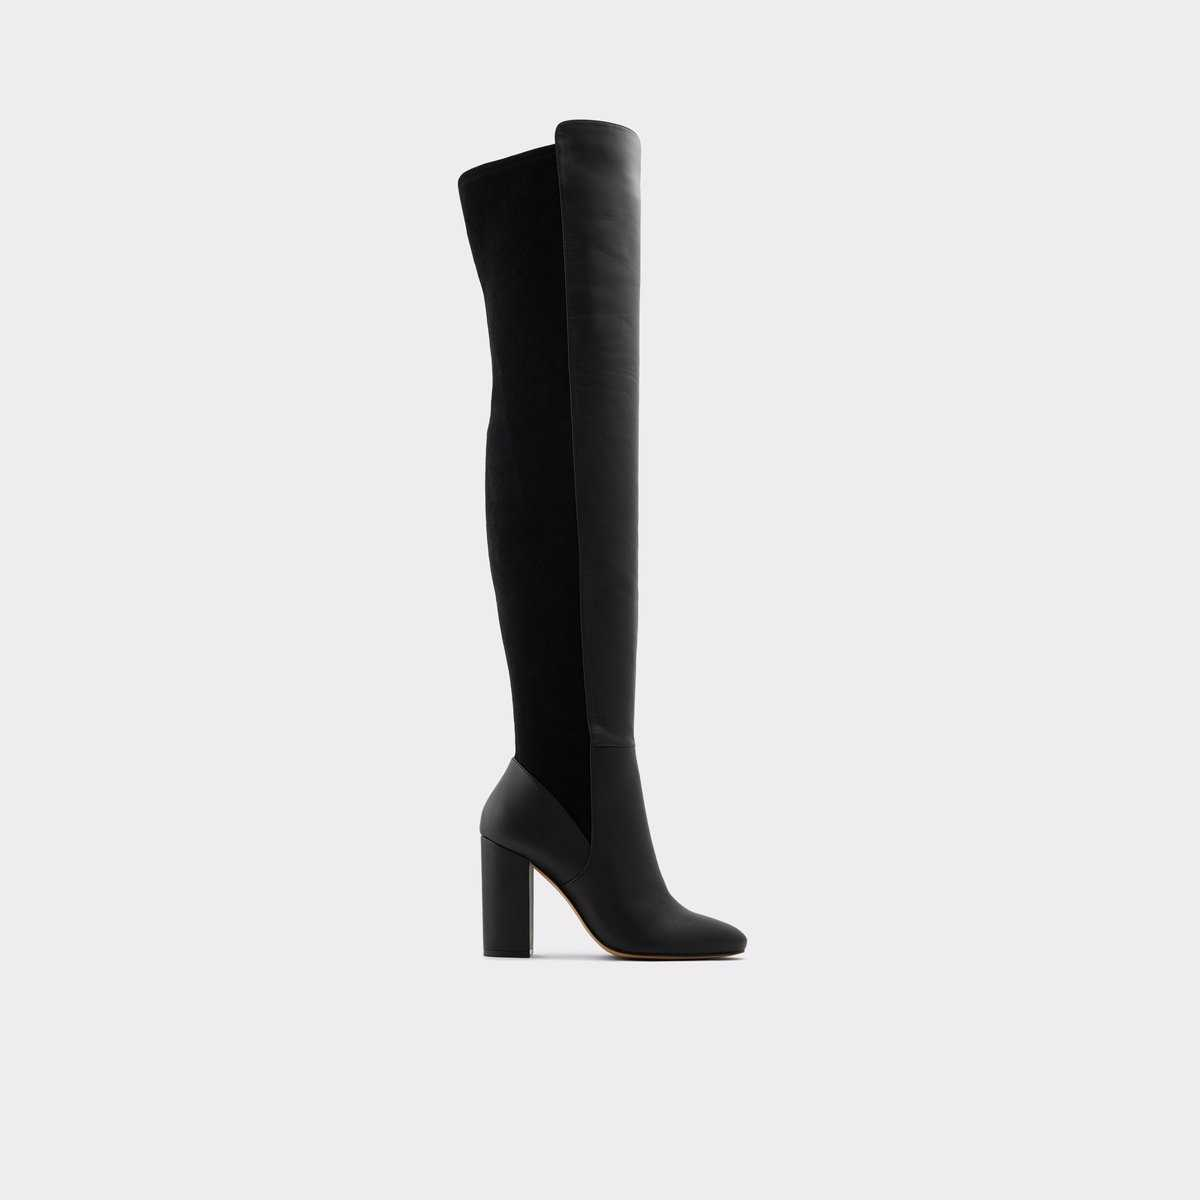 Ibeaviel Black Textile Mixed Material Women's Over-the-knee boots